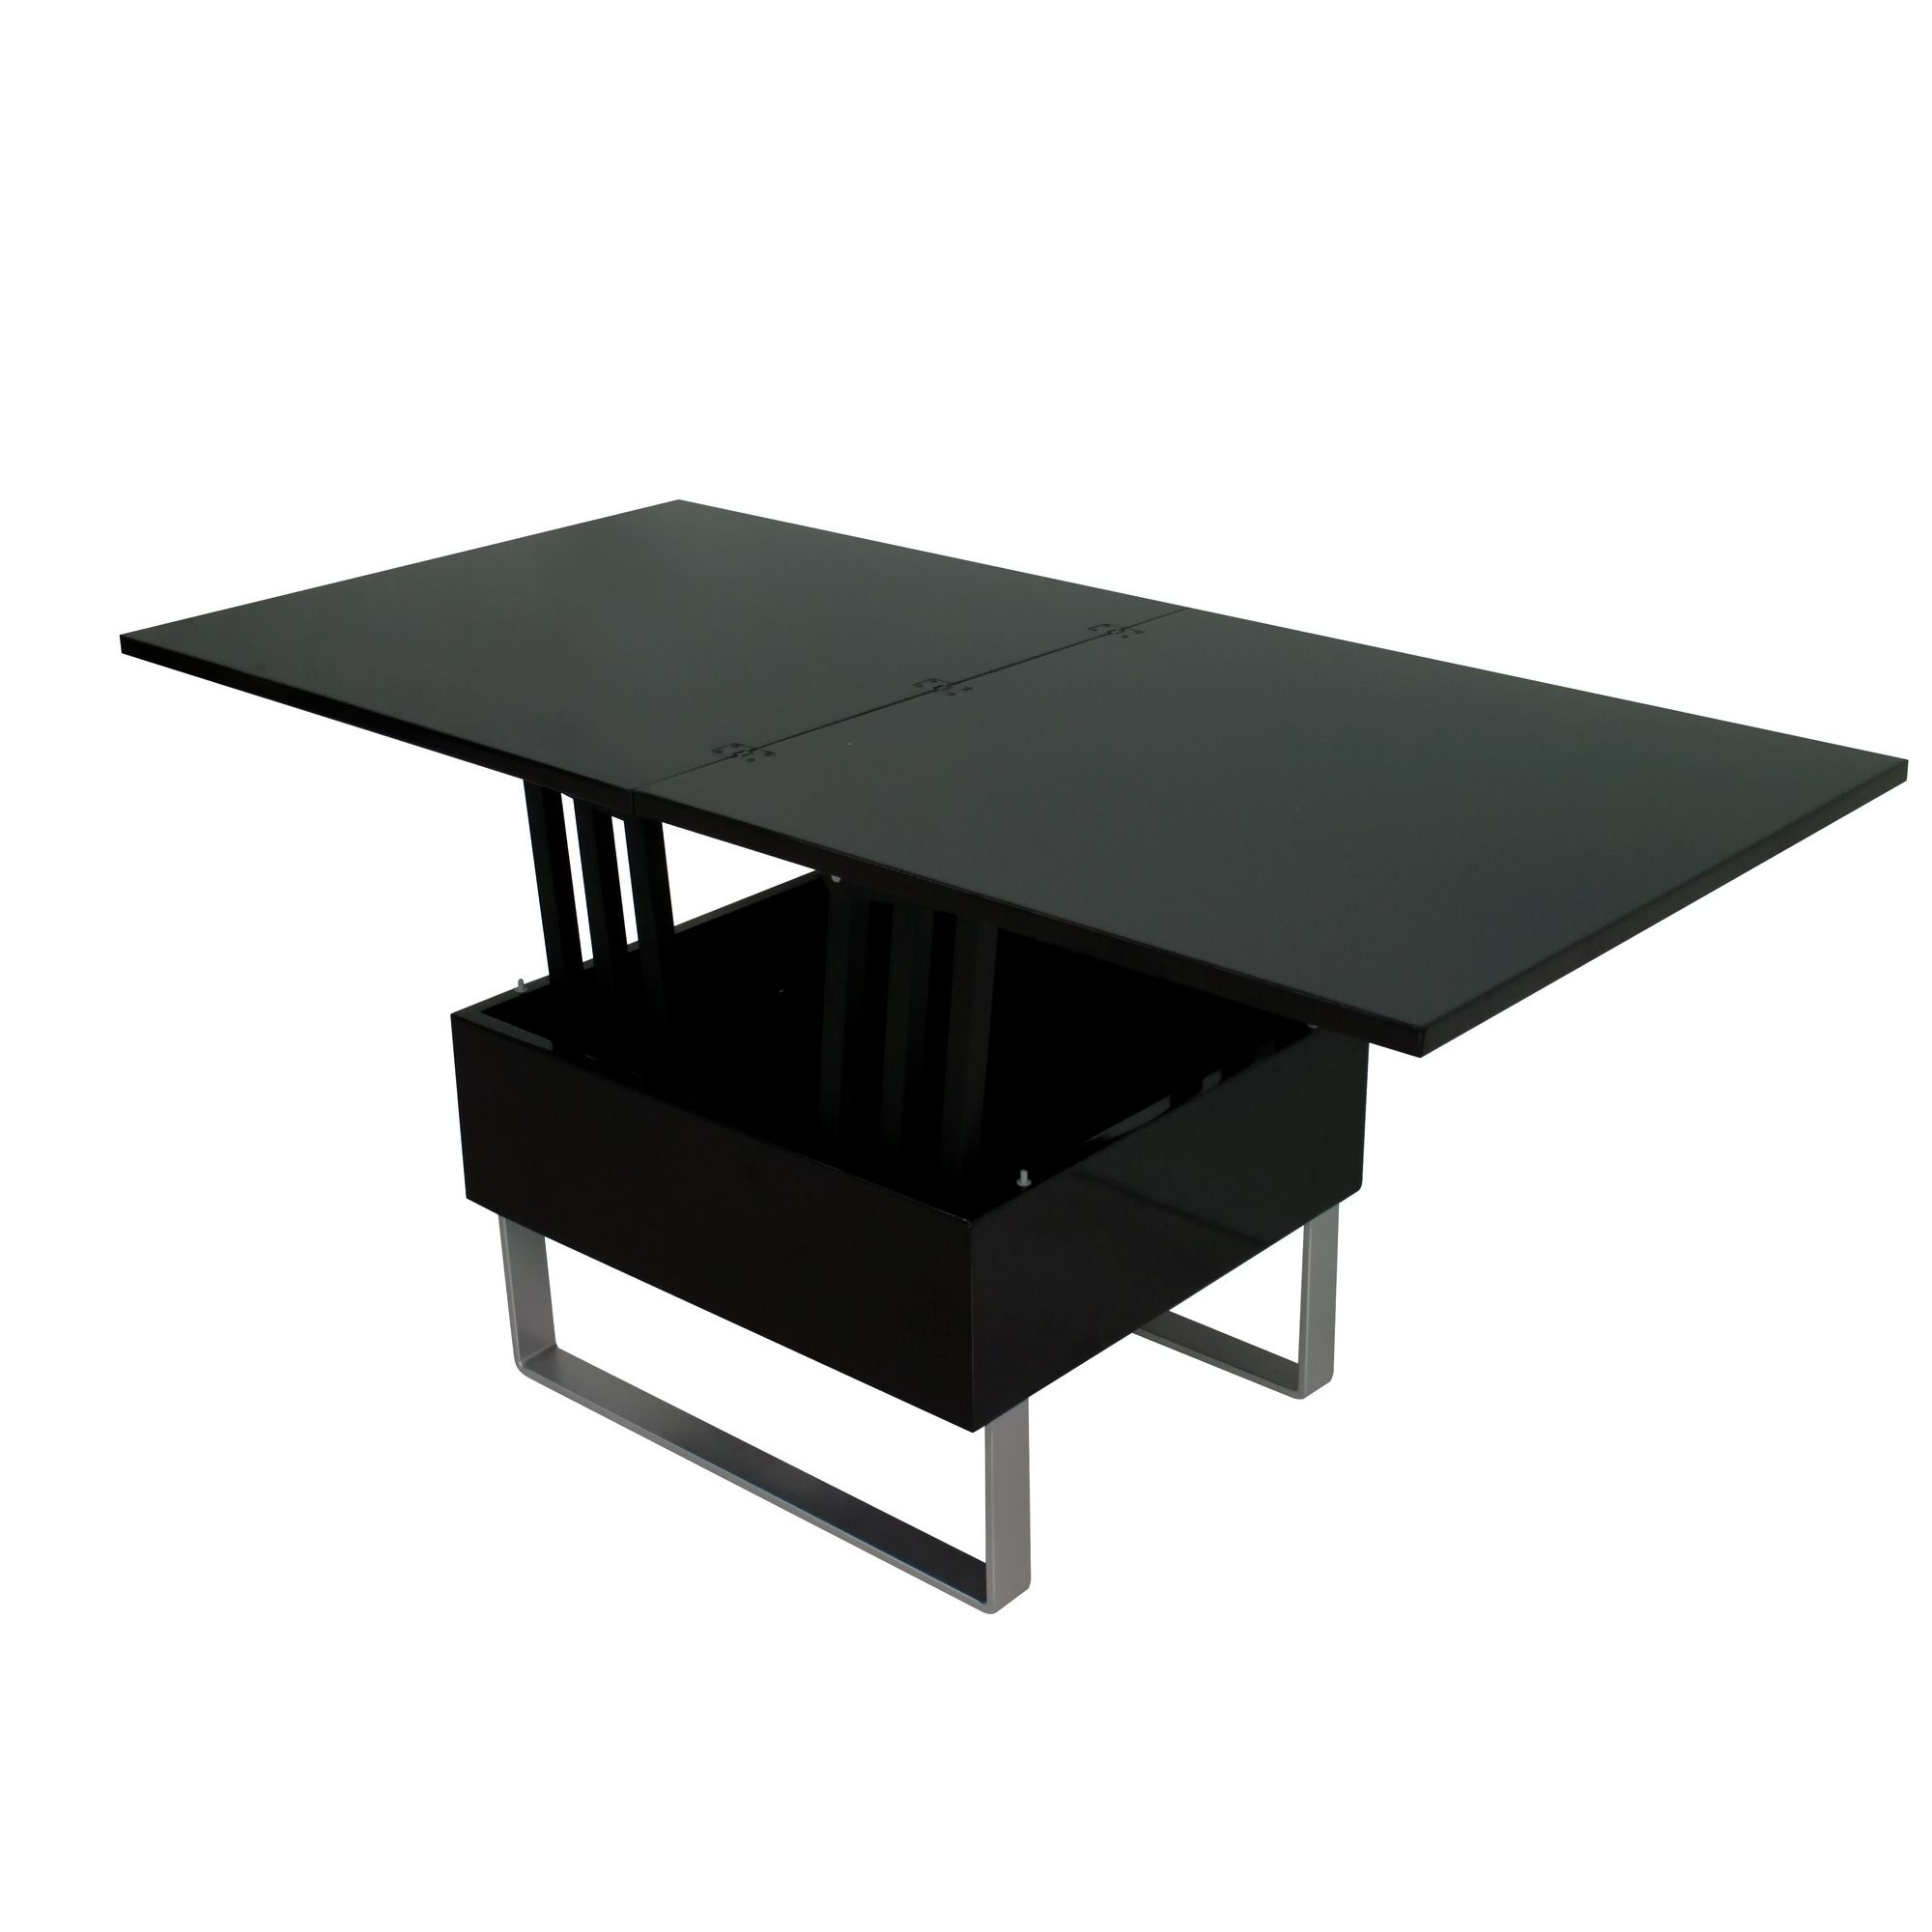 Table basse noir laque ikea maison design - Ikea table noire ...